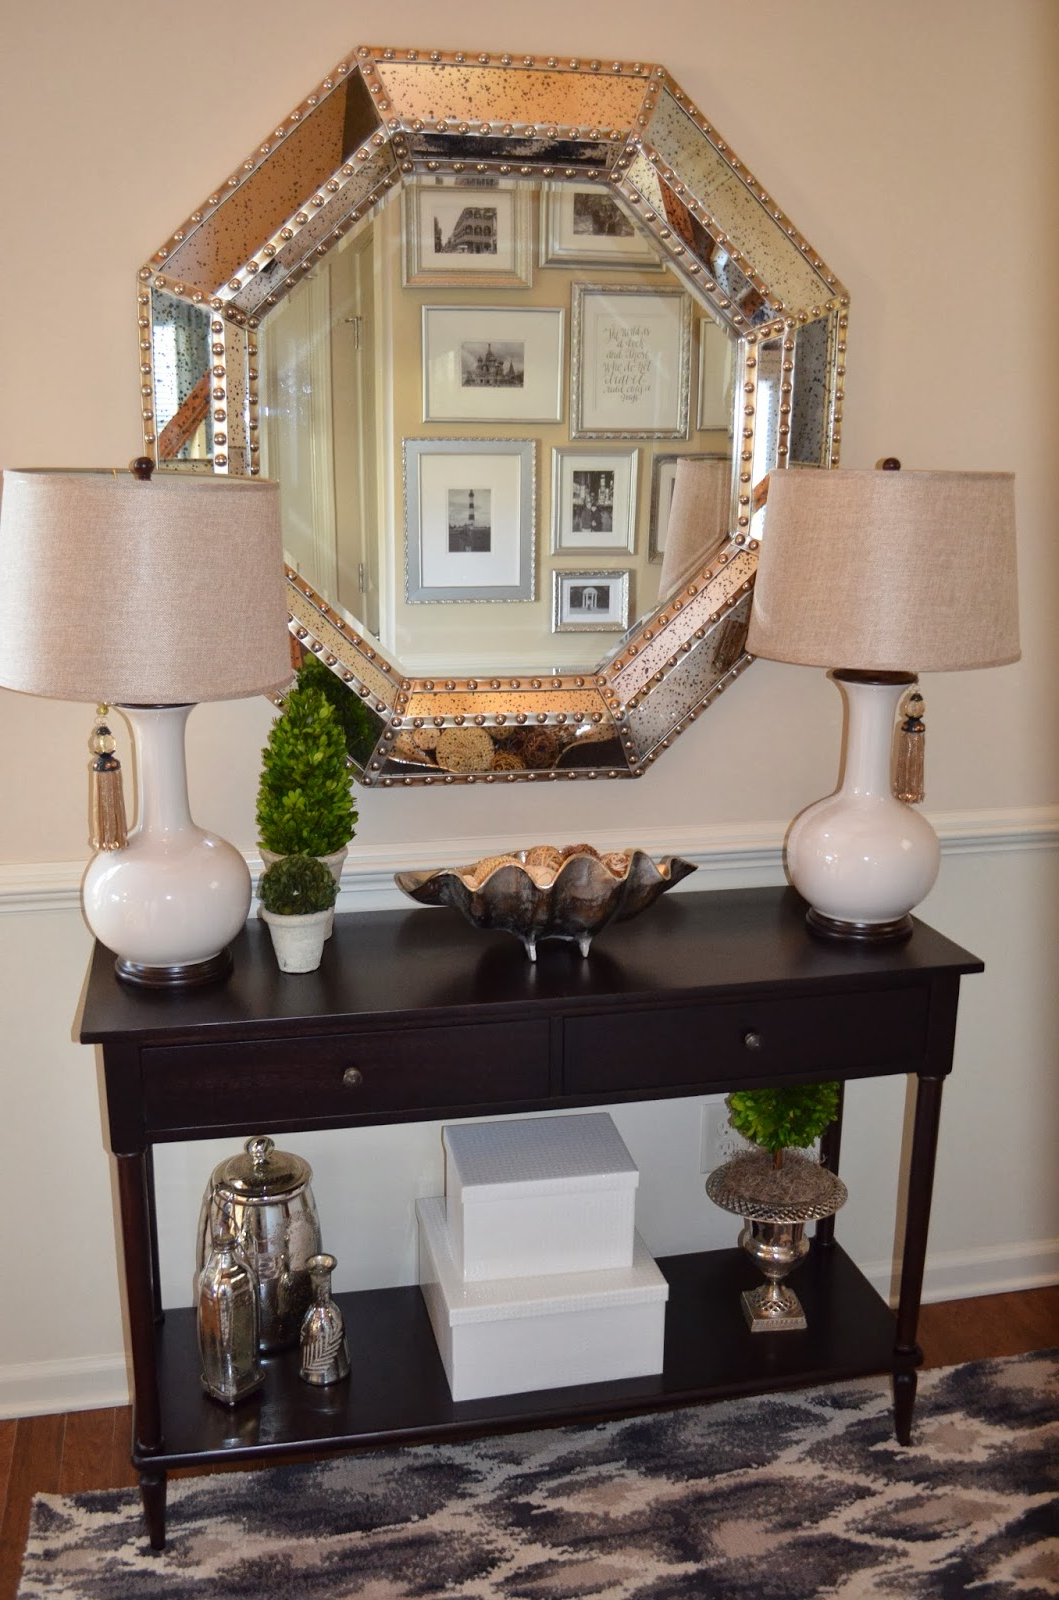 2020 Entryway Wall Mirrors Pertaining To Mirrors Amazing Accent Entryway Modern Decorative For Mirror (View 2 of 20)